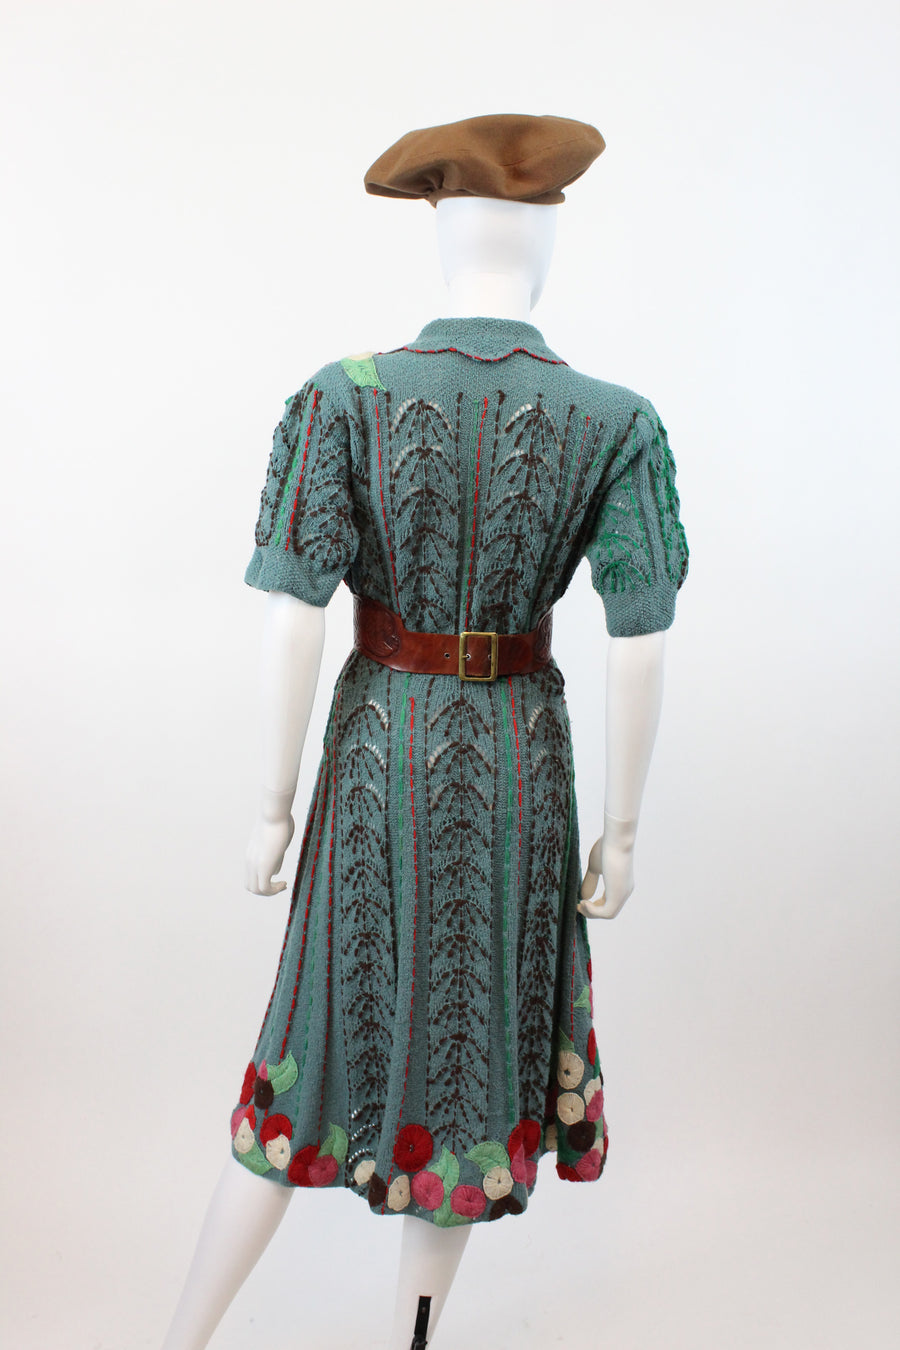 1930s crewel work knit dress medium large | vintage puffed sleeves | new fall